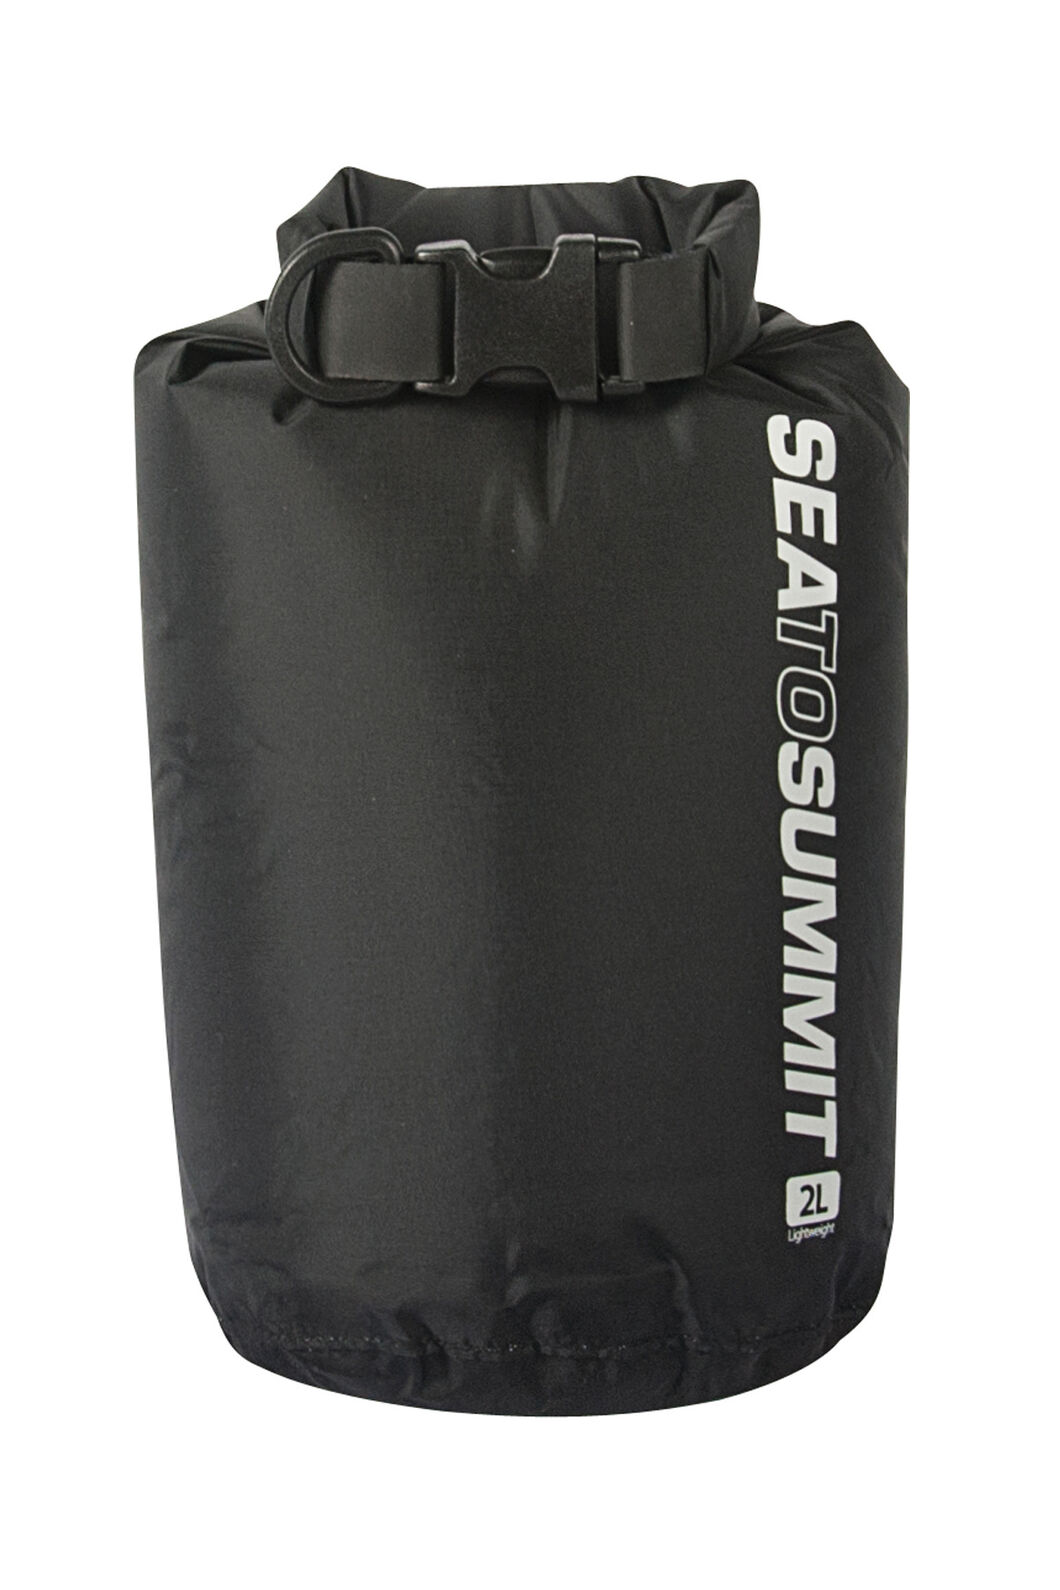 Sea to Summit 2L Light Dry Sack, None, hi-res